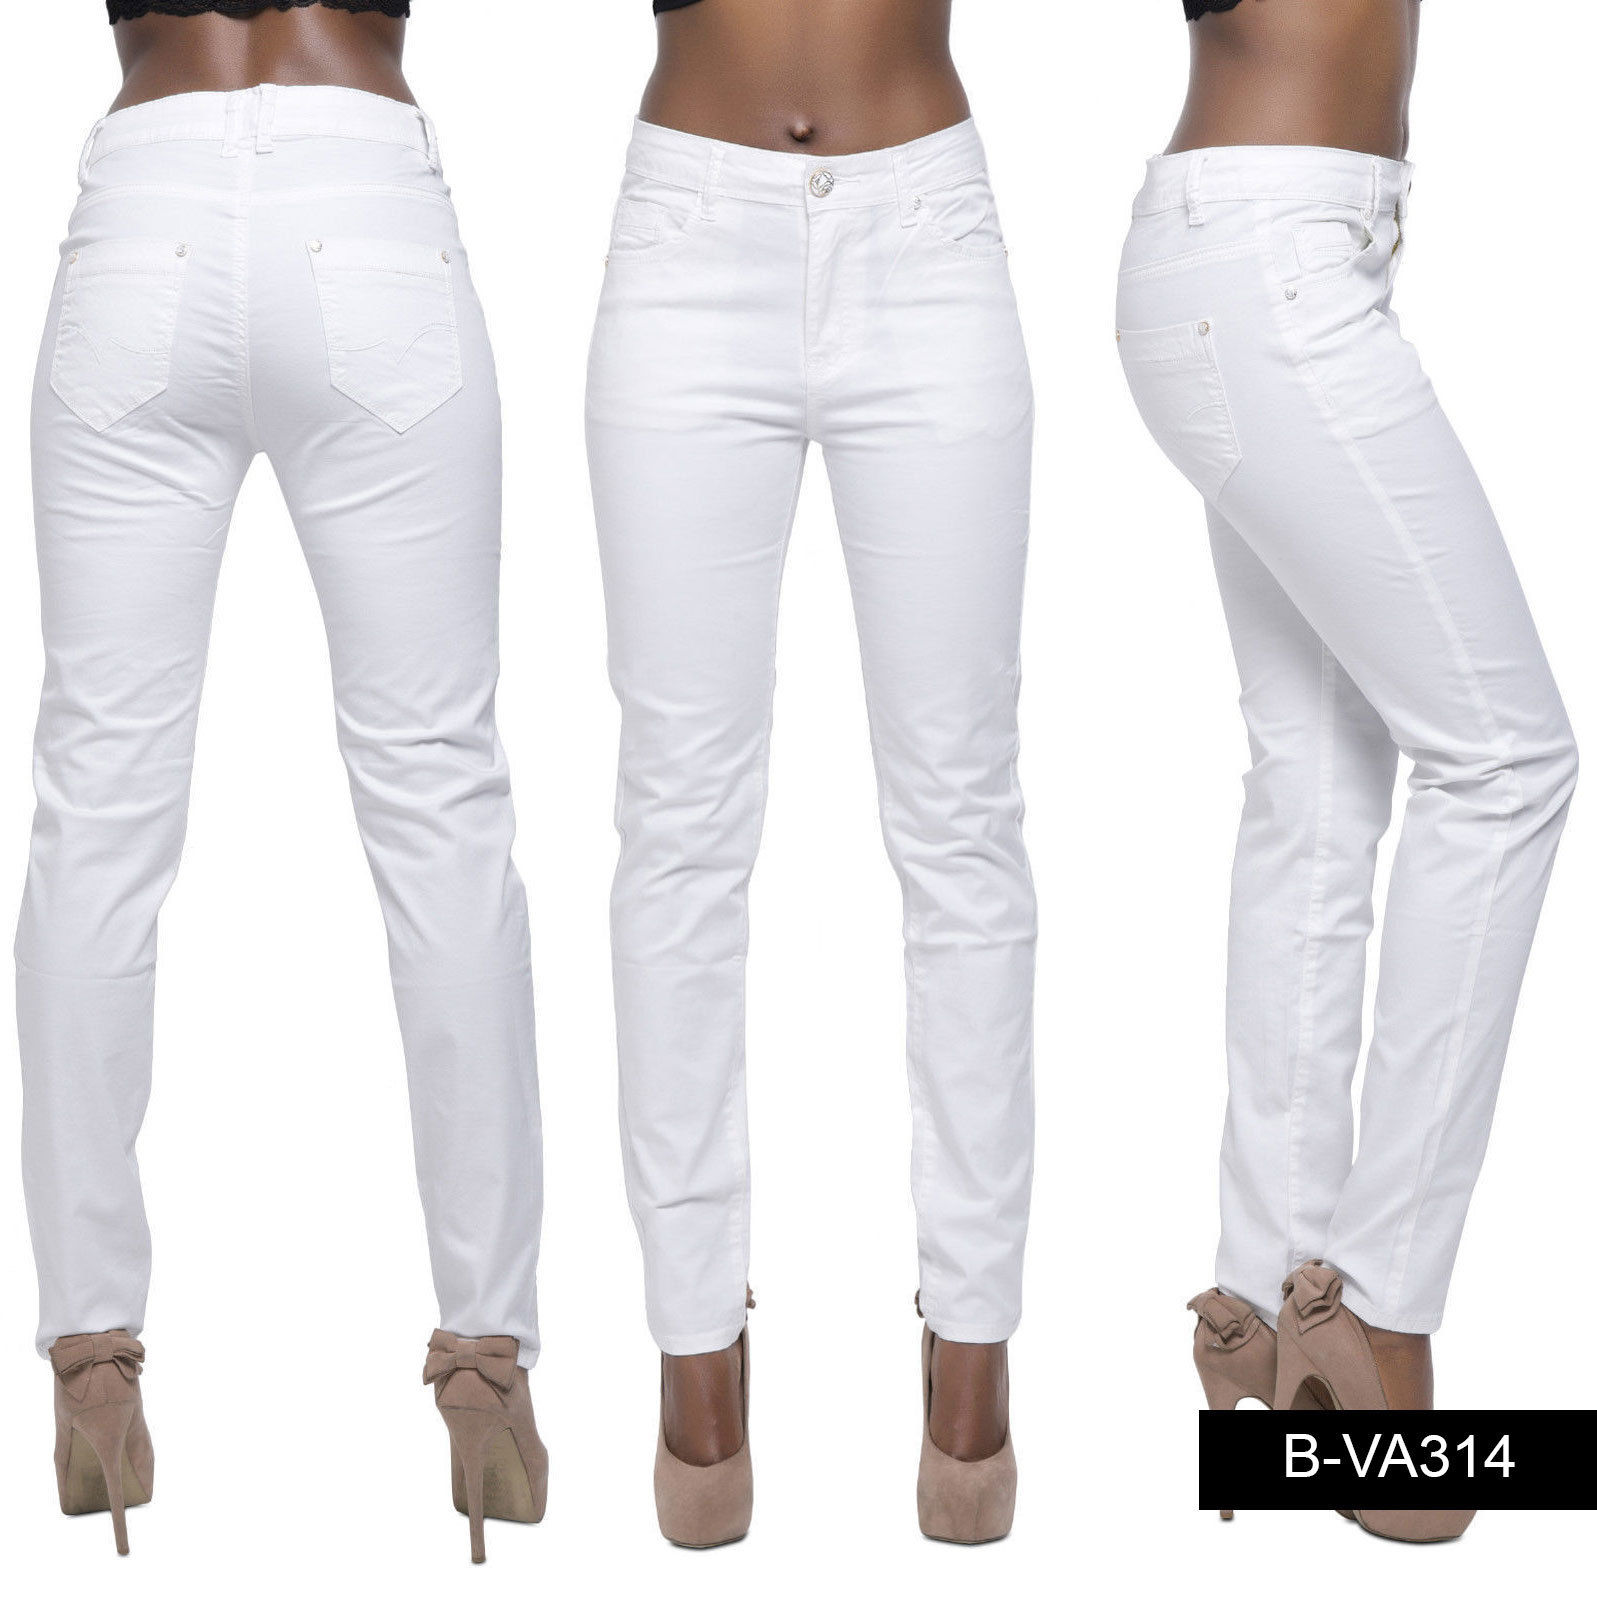 Gloria Vanderbilt Petite Amanda Stretch Jeans. $ Reg. $ Extra Savings - Enter Promo Code at Checkout. Size charts are to be used as a guide and provide general body measurements. Sizing and fit may vary by brand and/or body type. white stretch jeans. womens black 5 pocket jeans. womens black comfort jeans.